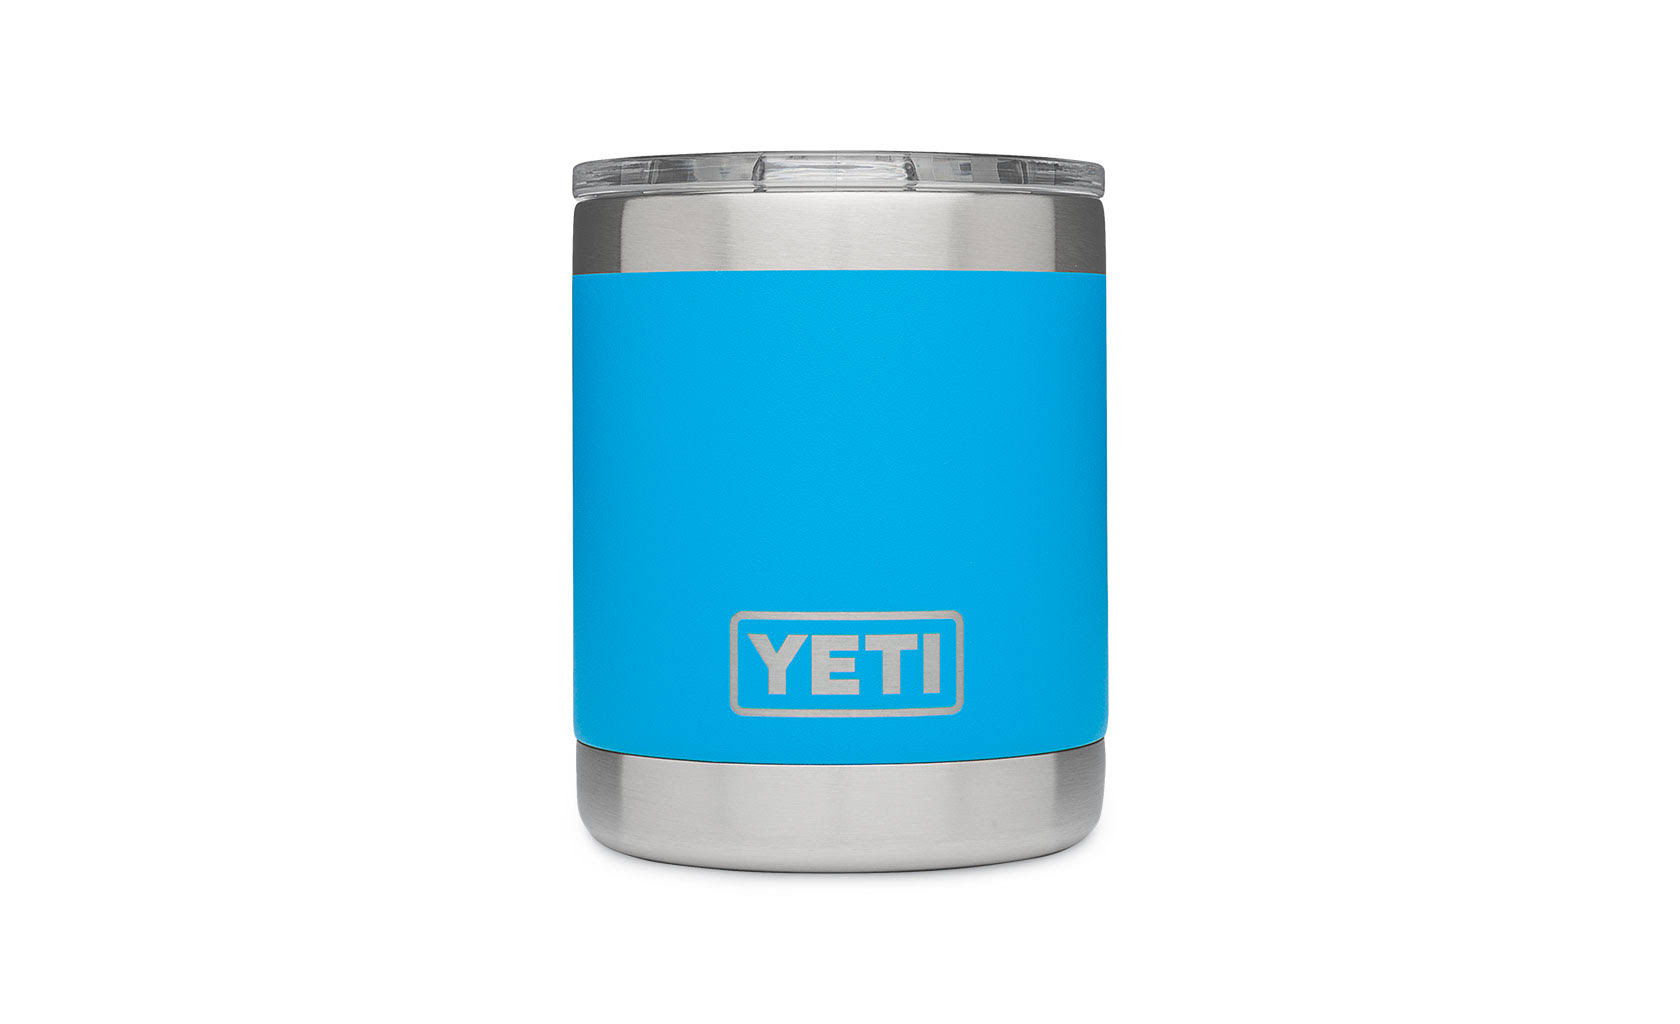 Yeti Rambler Lowball Stainless Steel Cup - with Lid, 10oz